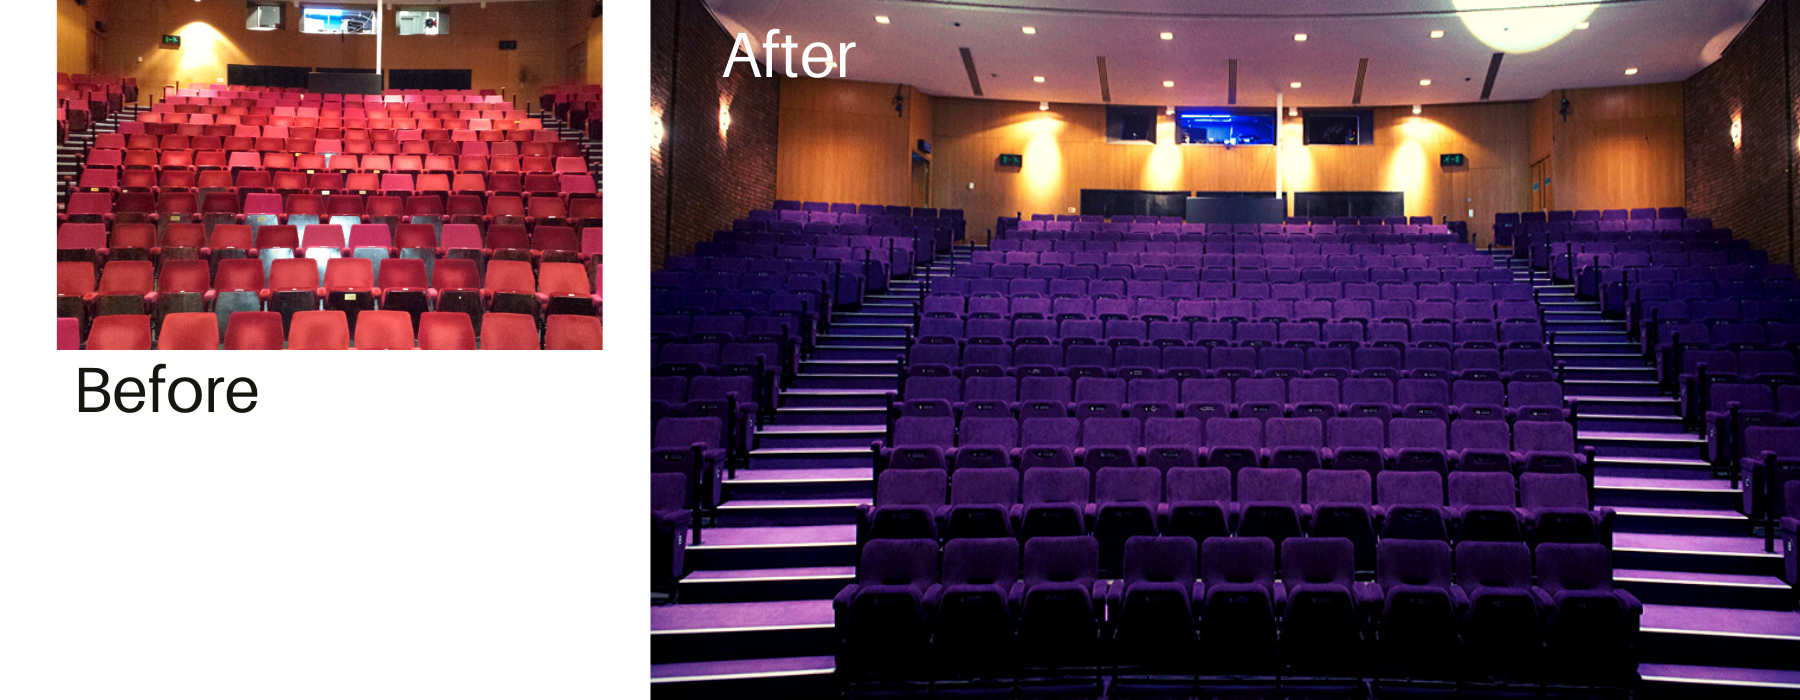 Before and after images of a theatre auditorium showing old red seats and then installation of new purple fabric colour for fixed seating